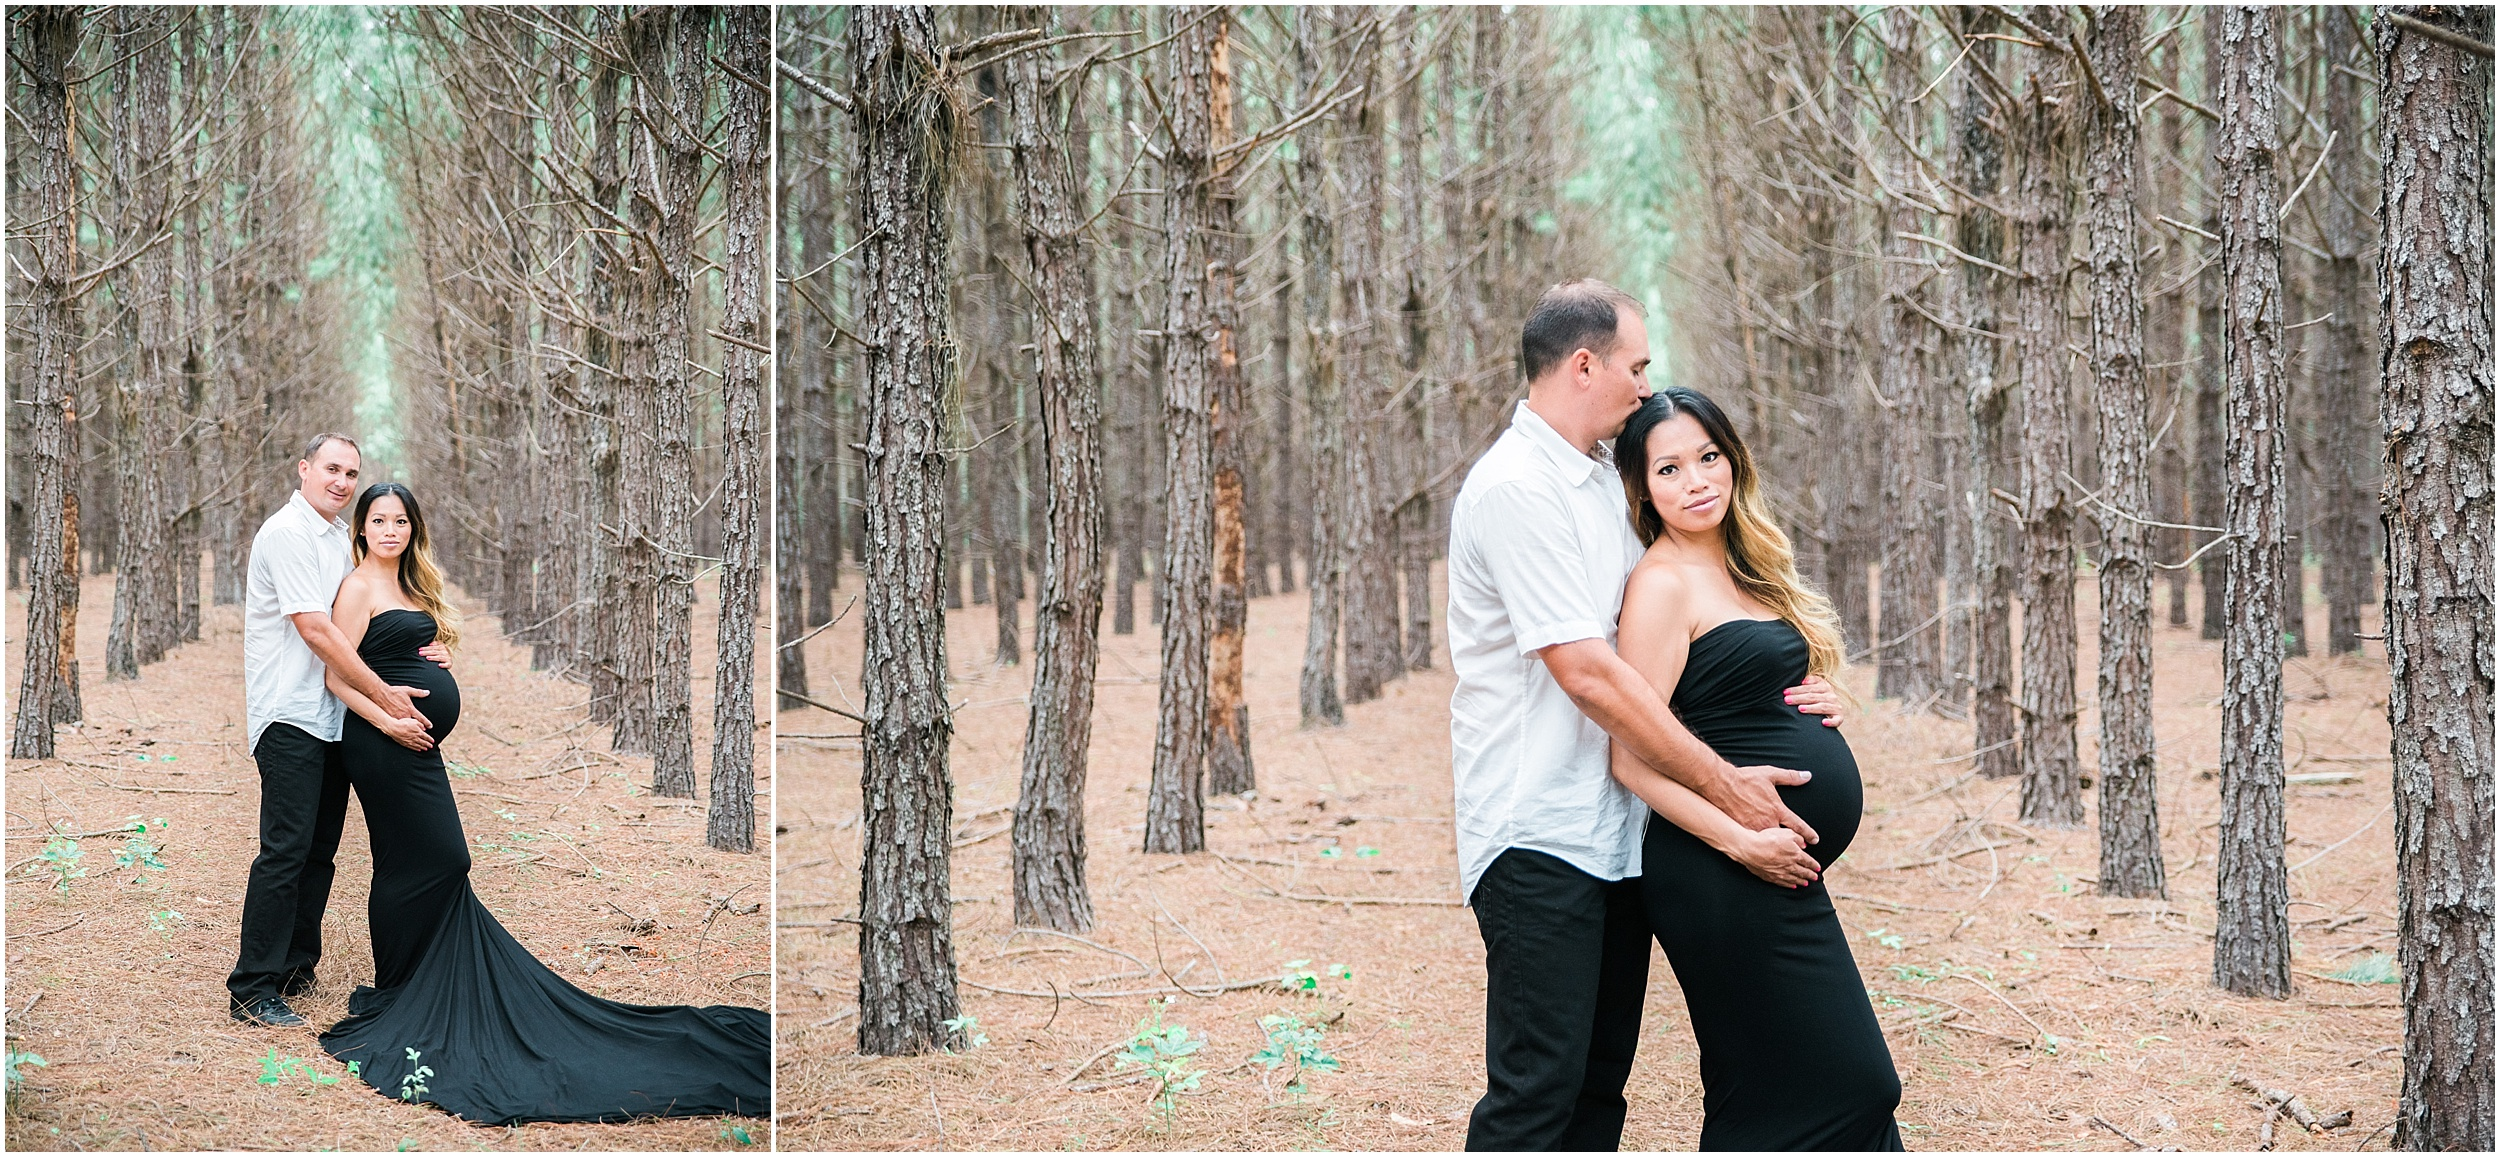 Linda & Thomas Maternity Session in Quitman, Georgia_0023.jpg